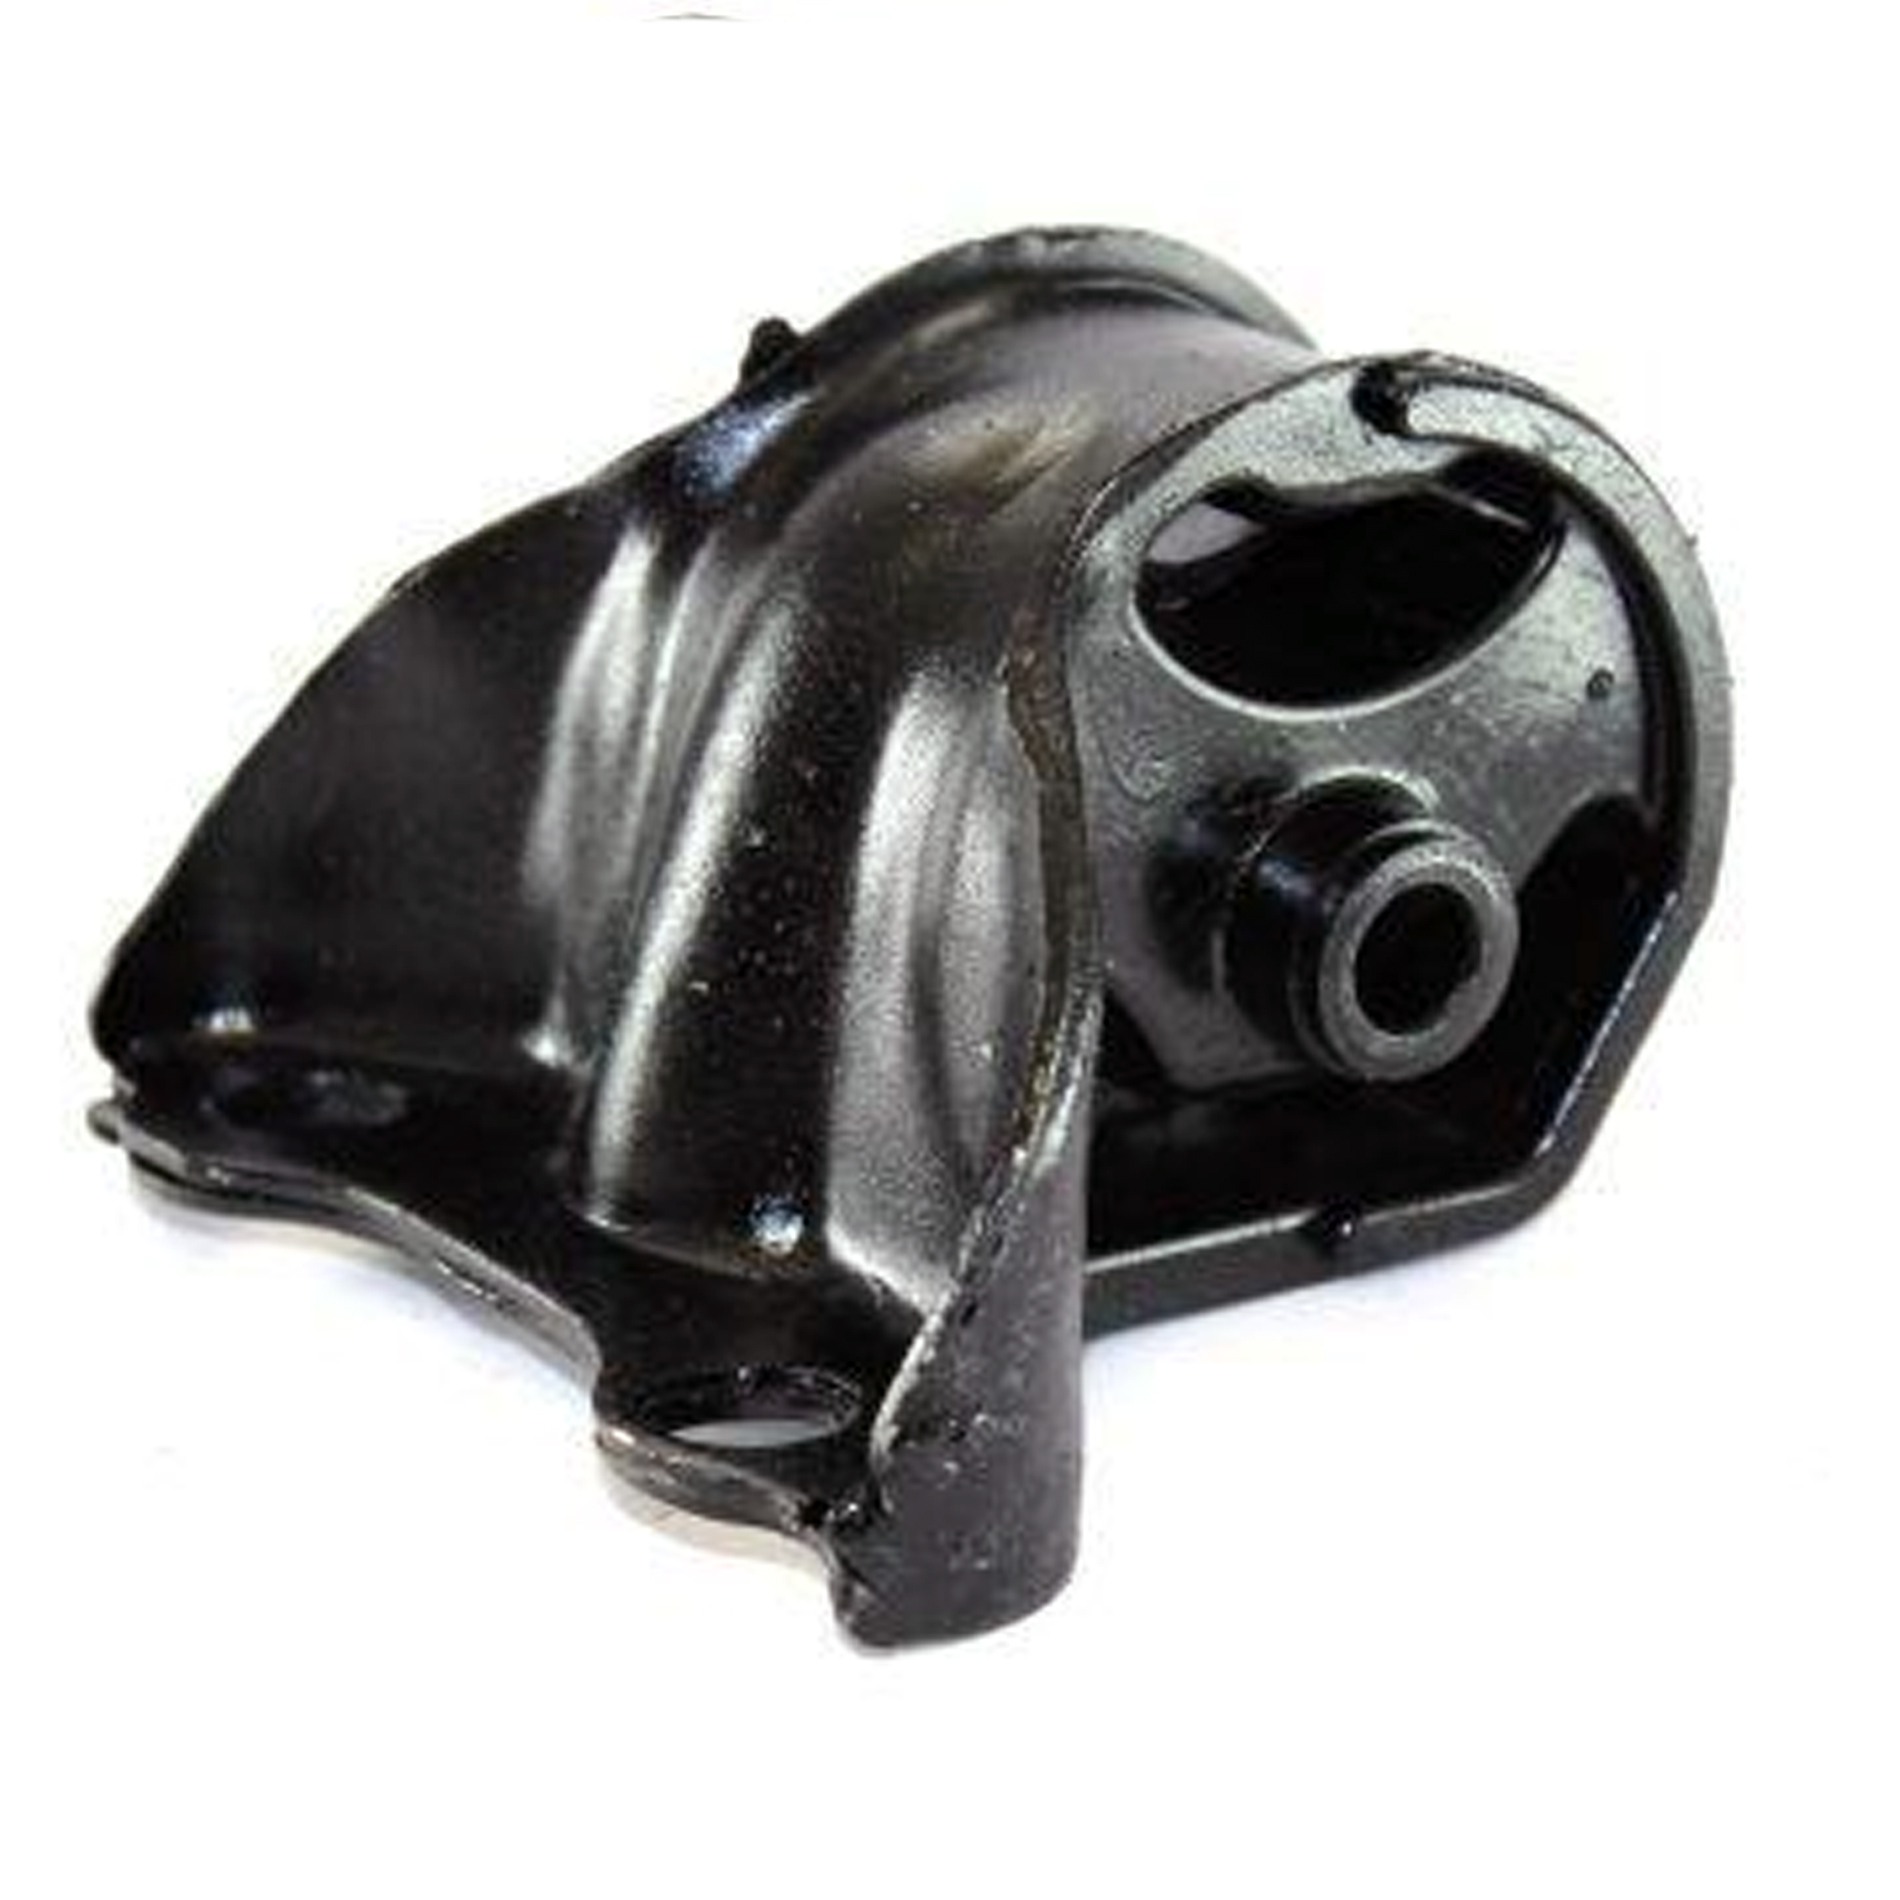 For 1994-2001 Acura Integra LS 1.8L Automatic Engine Motor